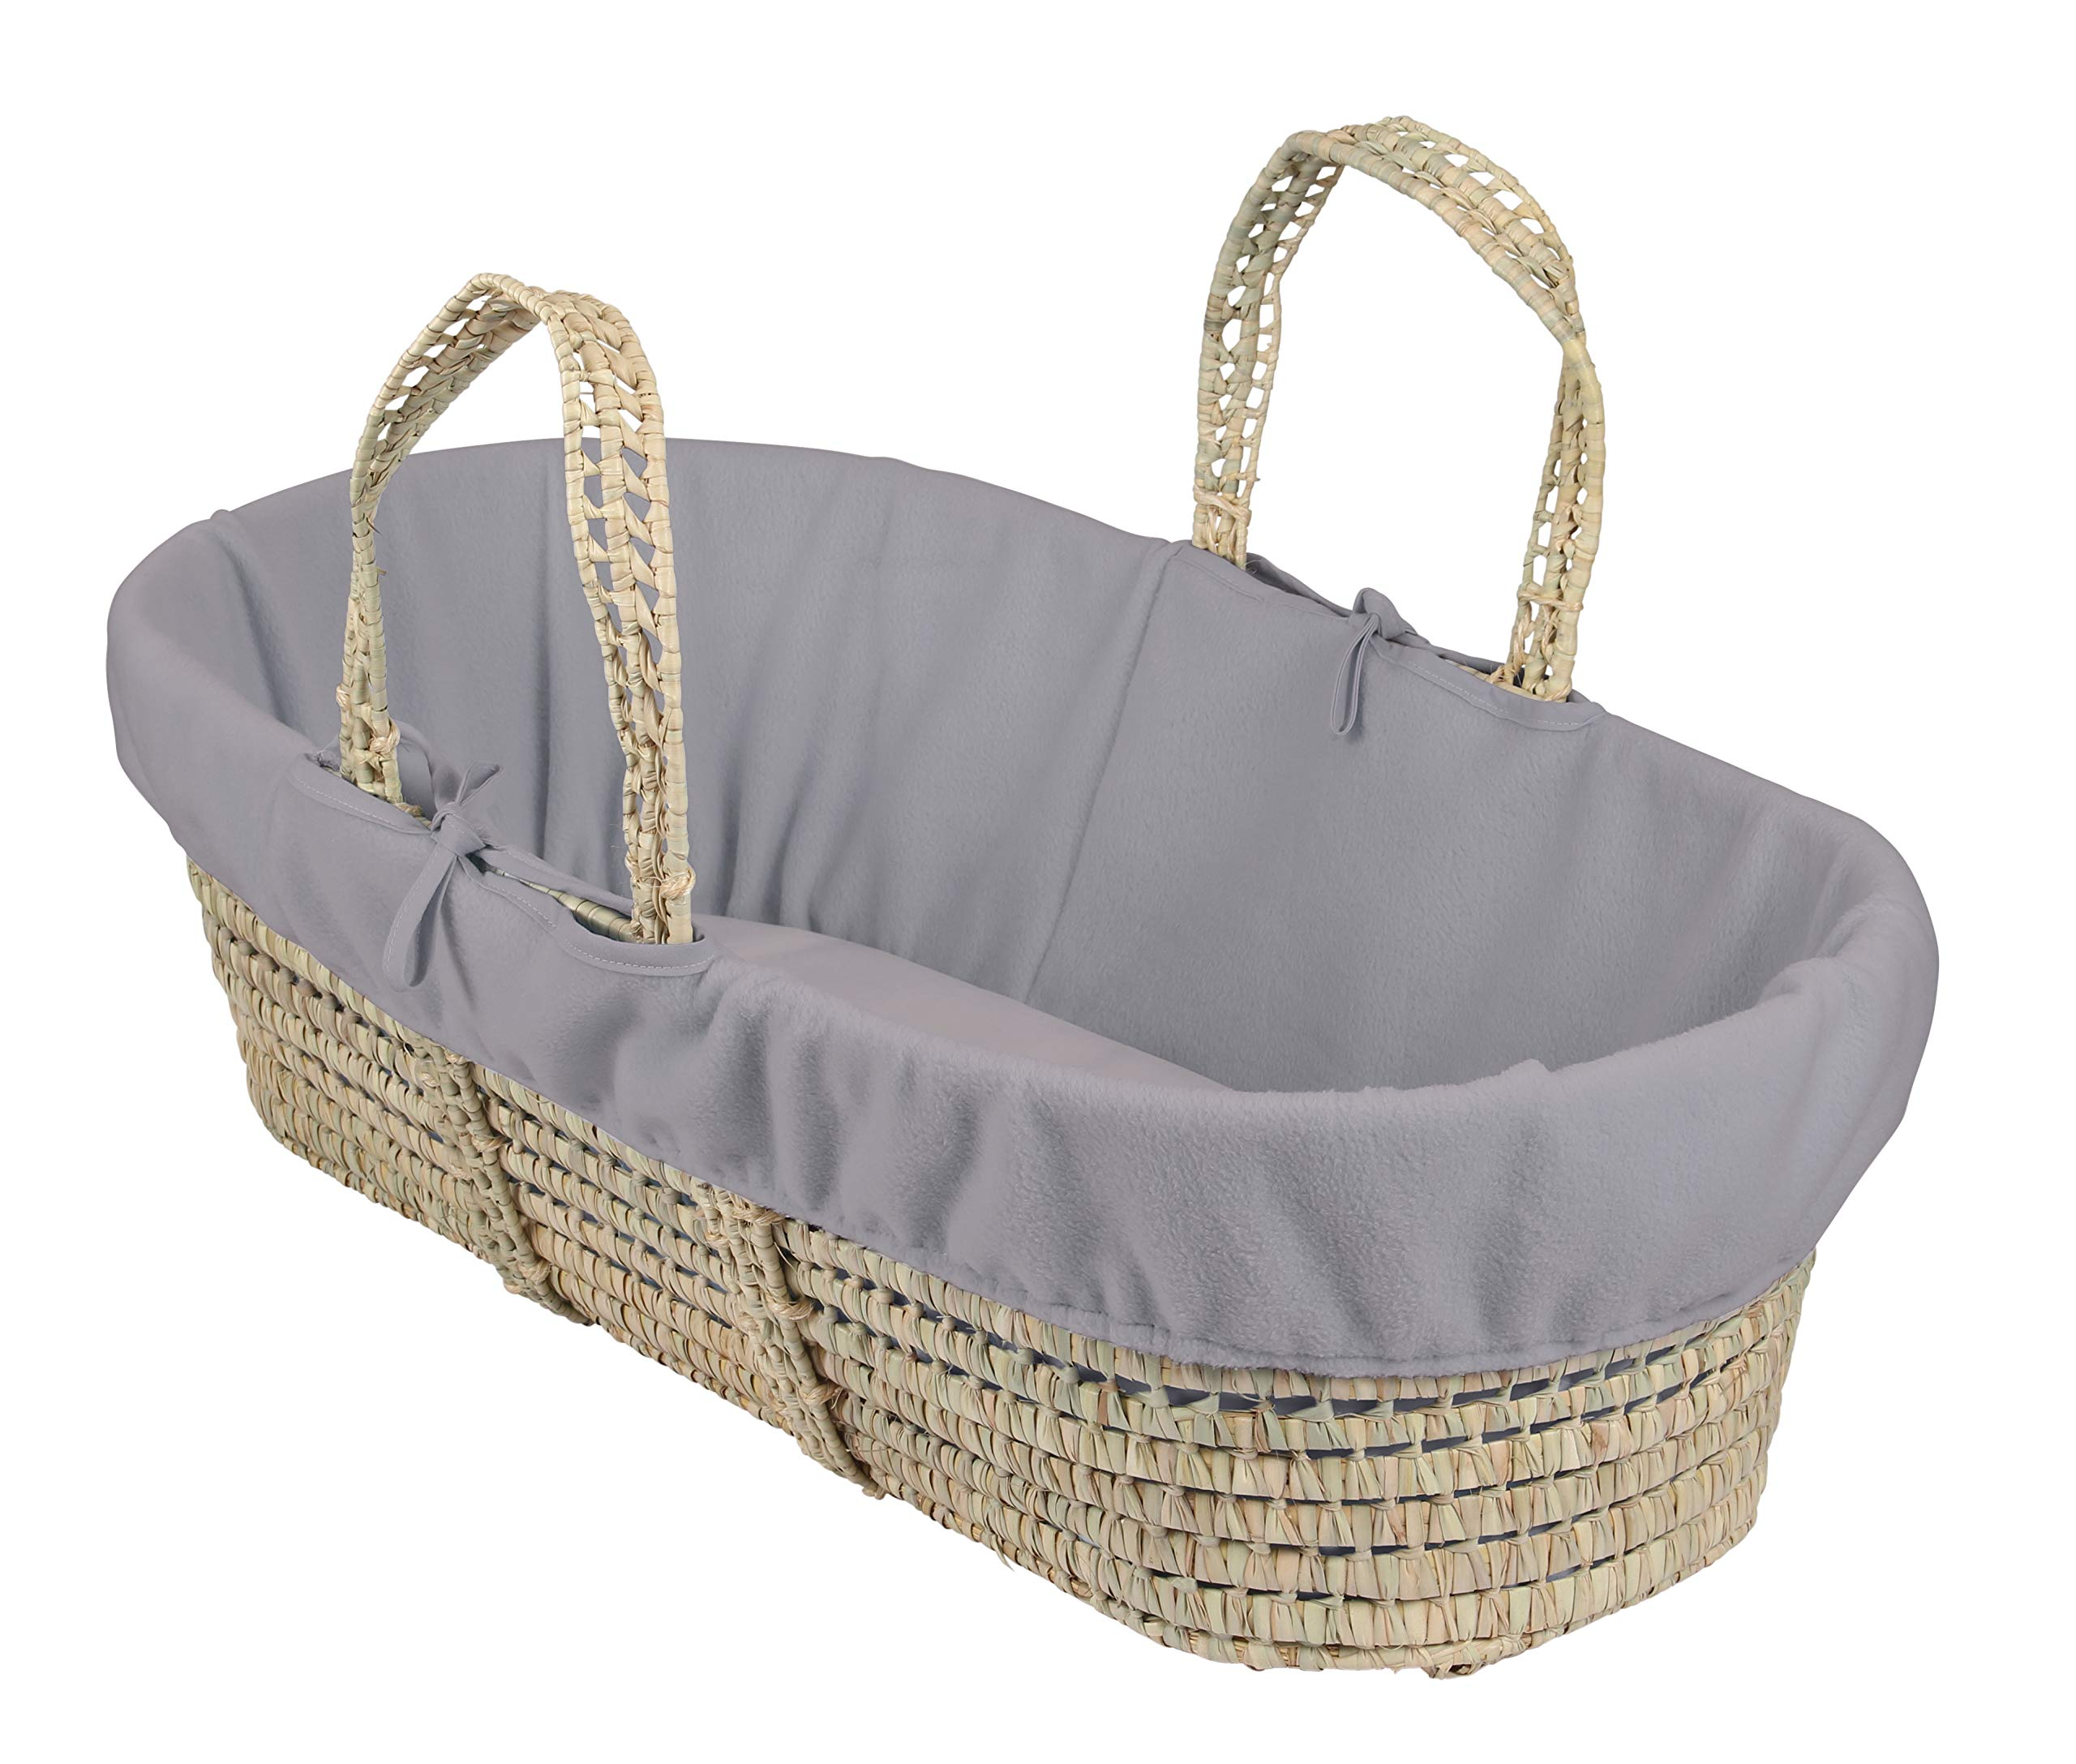 Clair de Lune Fleece Liner for Palm & Wicker Moses Baskets - Grey Melange Clair de Lune Replacement liner for moses/wicker baskets - ideal to use as a spare when washing other dressings Mattress and basket not included 100% polyester anti pilling fleece 1